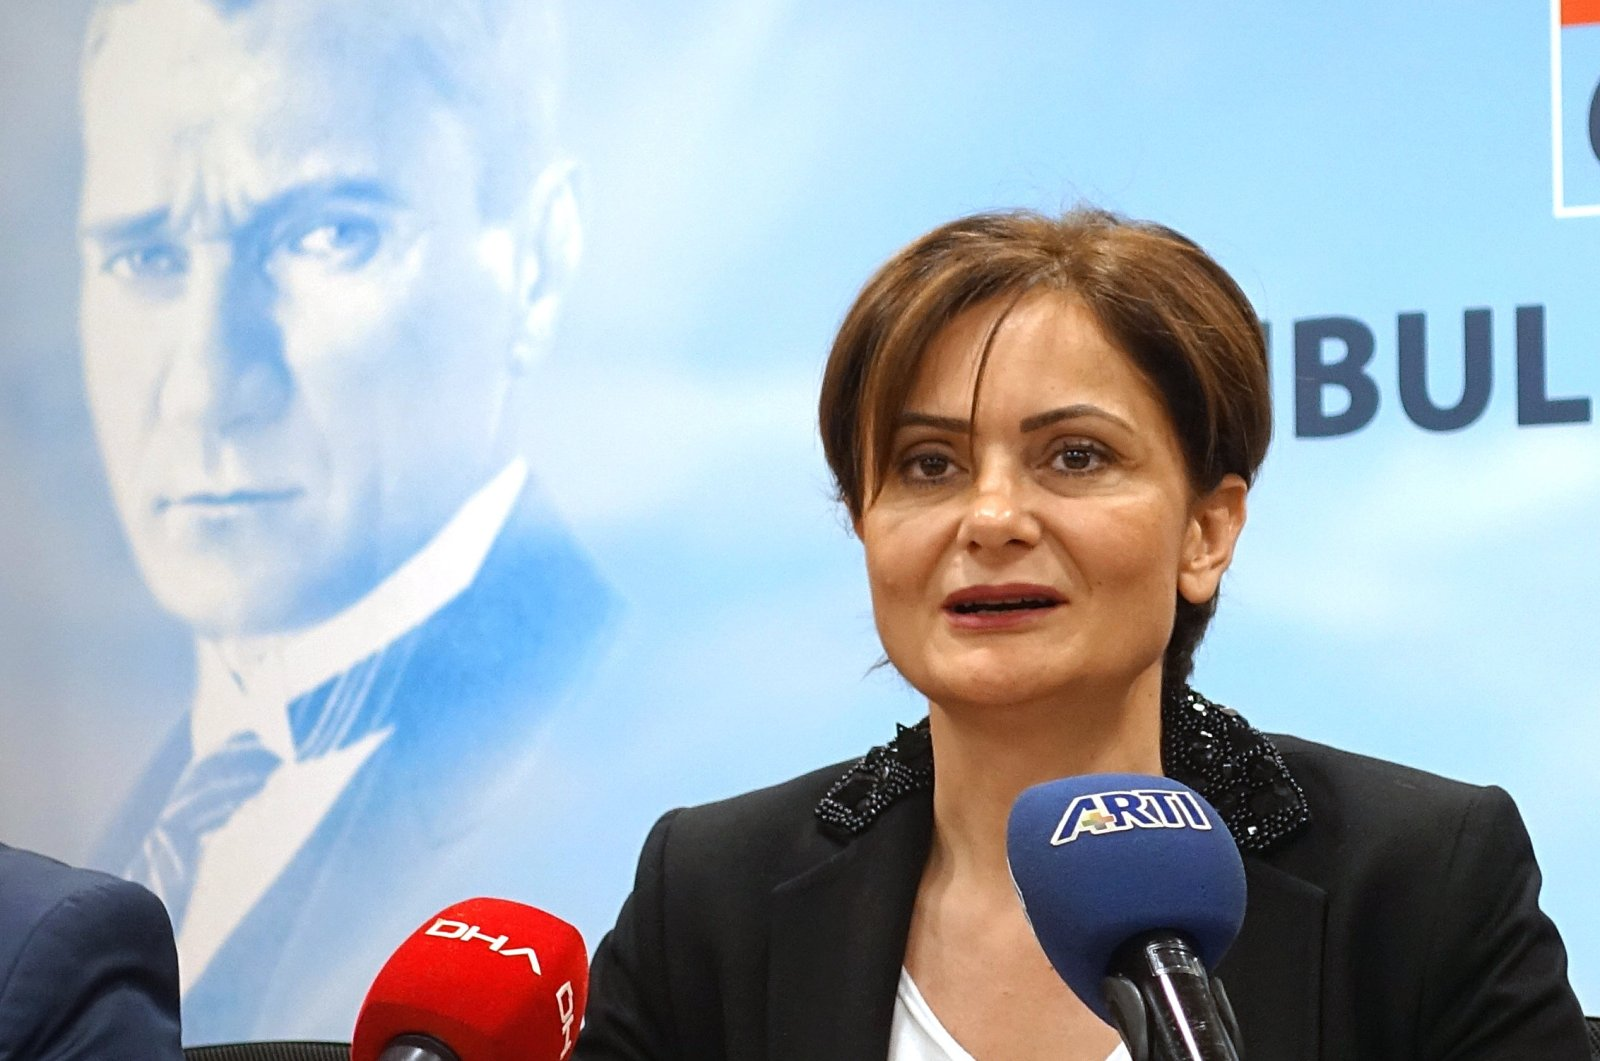 Canan Kaftancıoğlu, the main opposition Republican People's Party (CHP) Istanbul head, speaks during a press conference in Istanbul, May 22, 2019. (AA Photo)